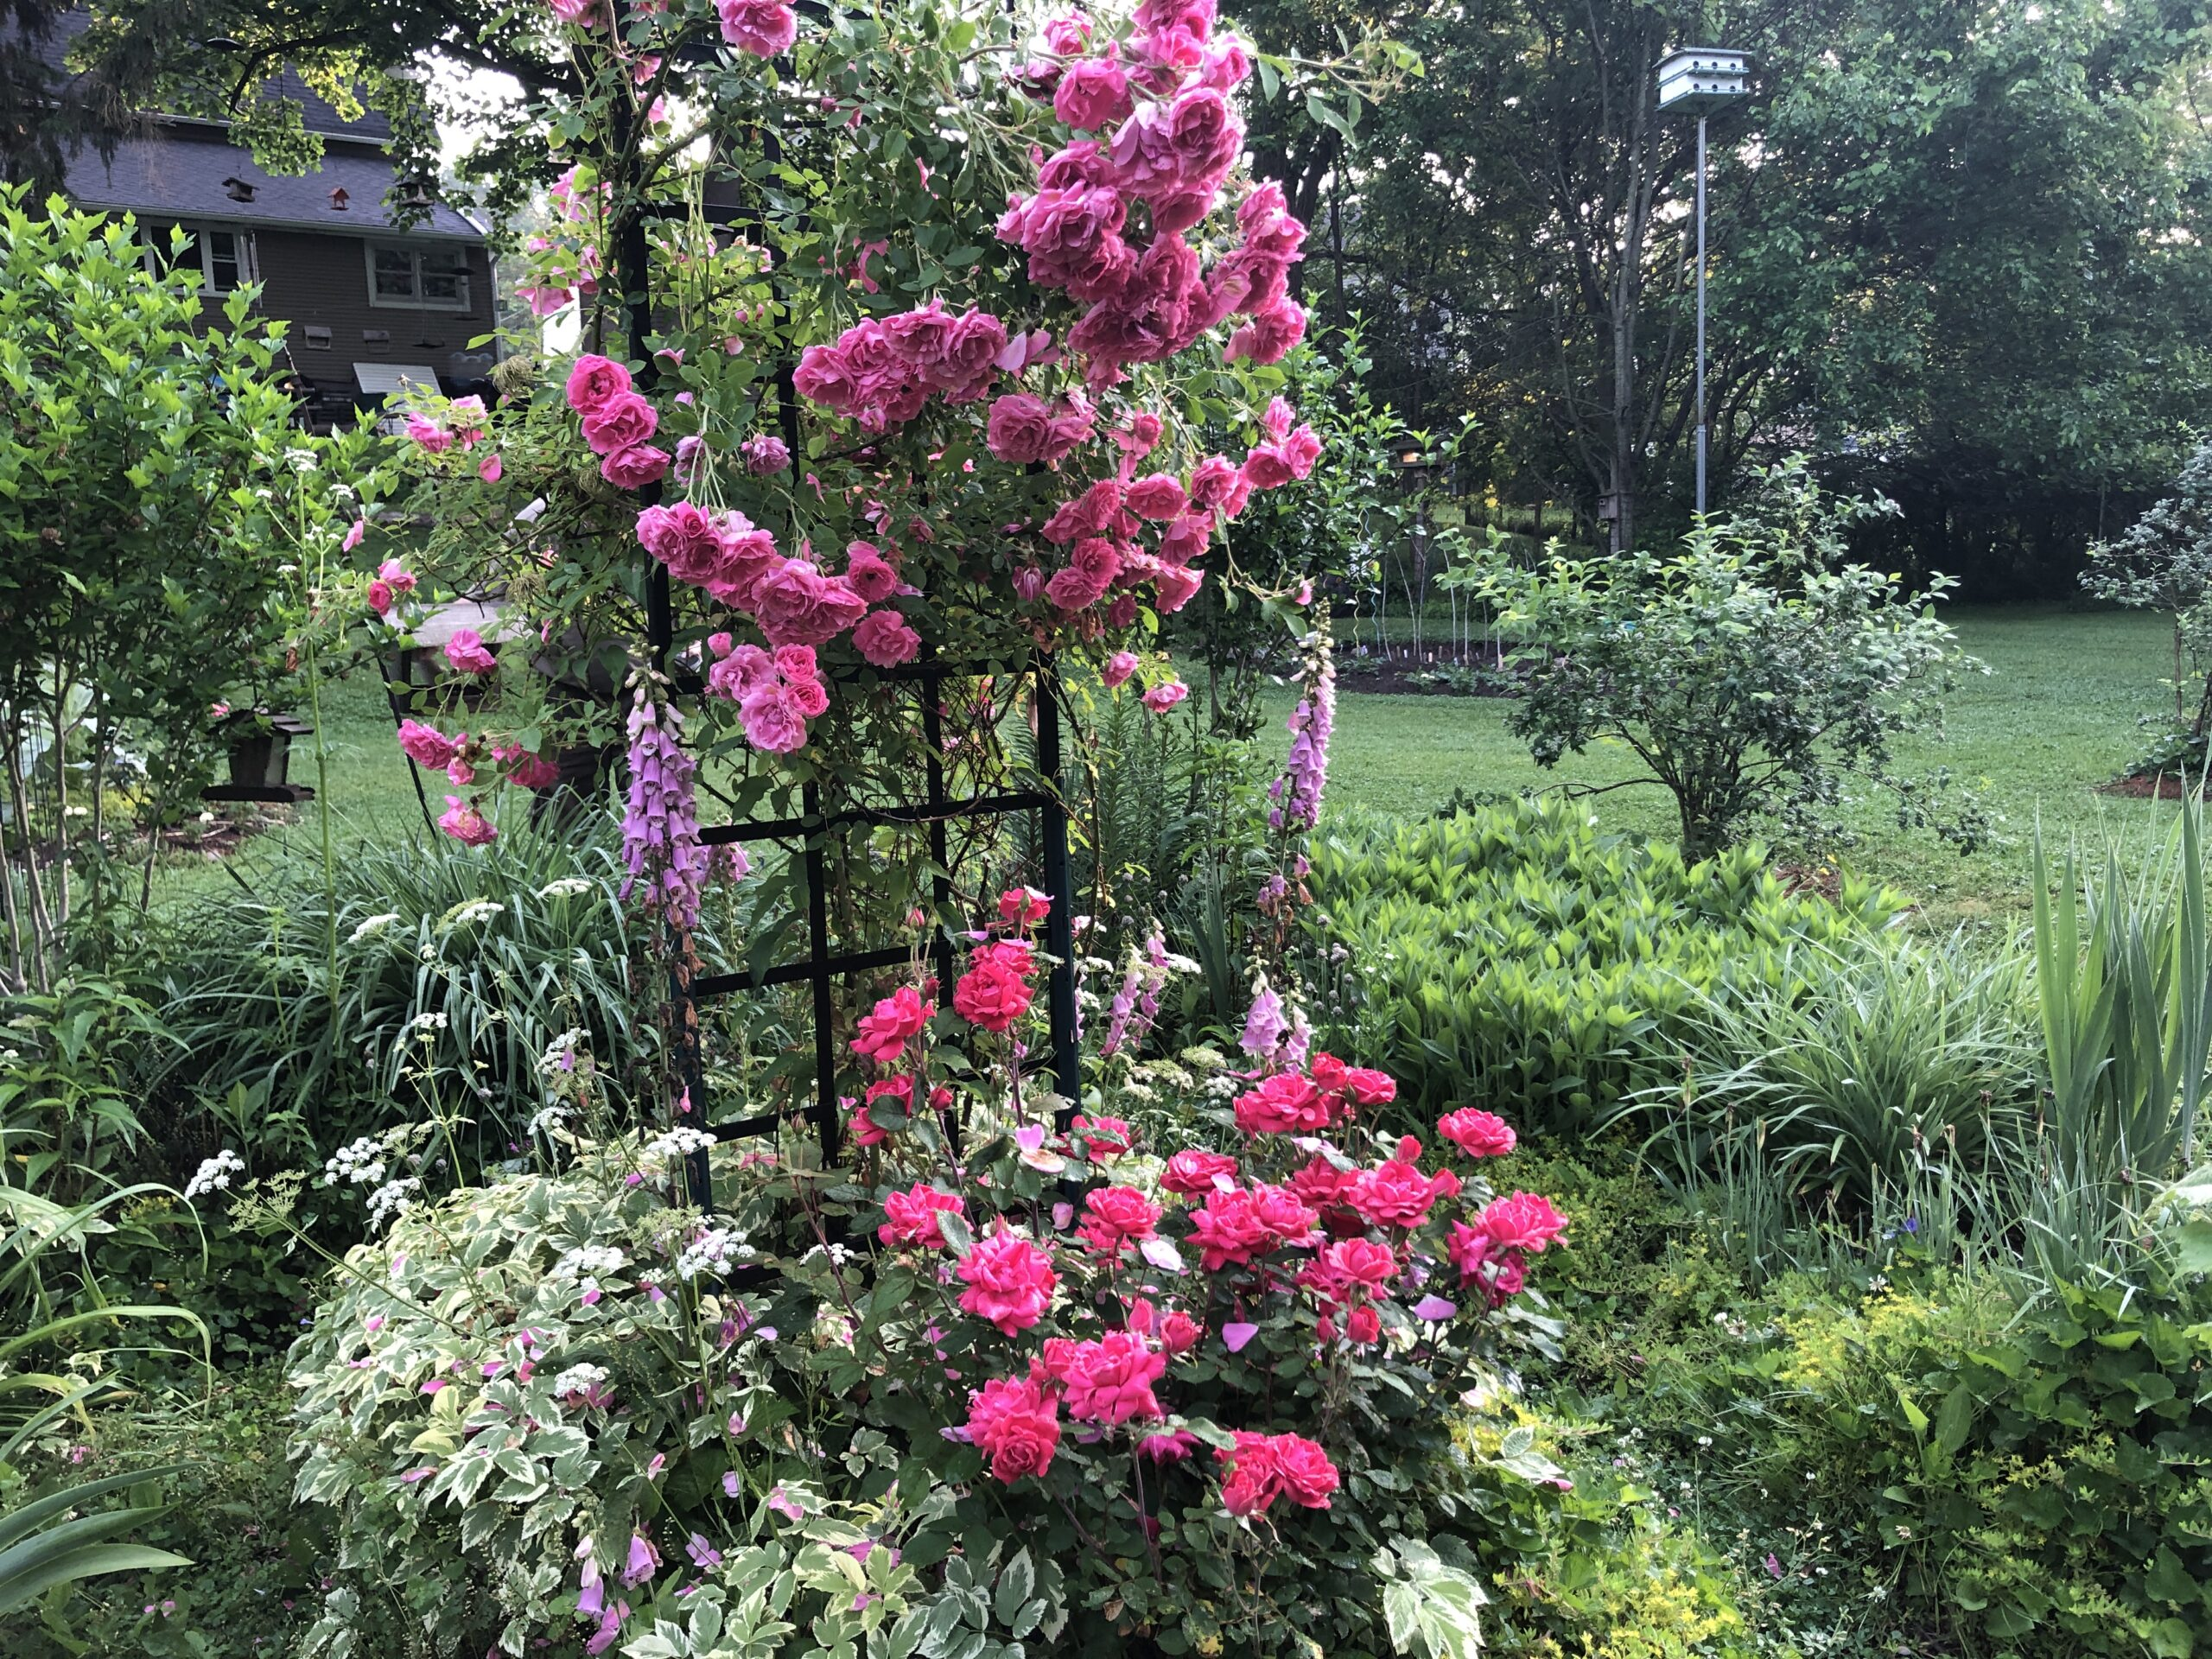 lots of pink flowers growing together